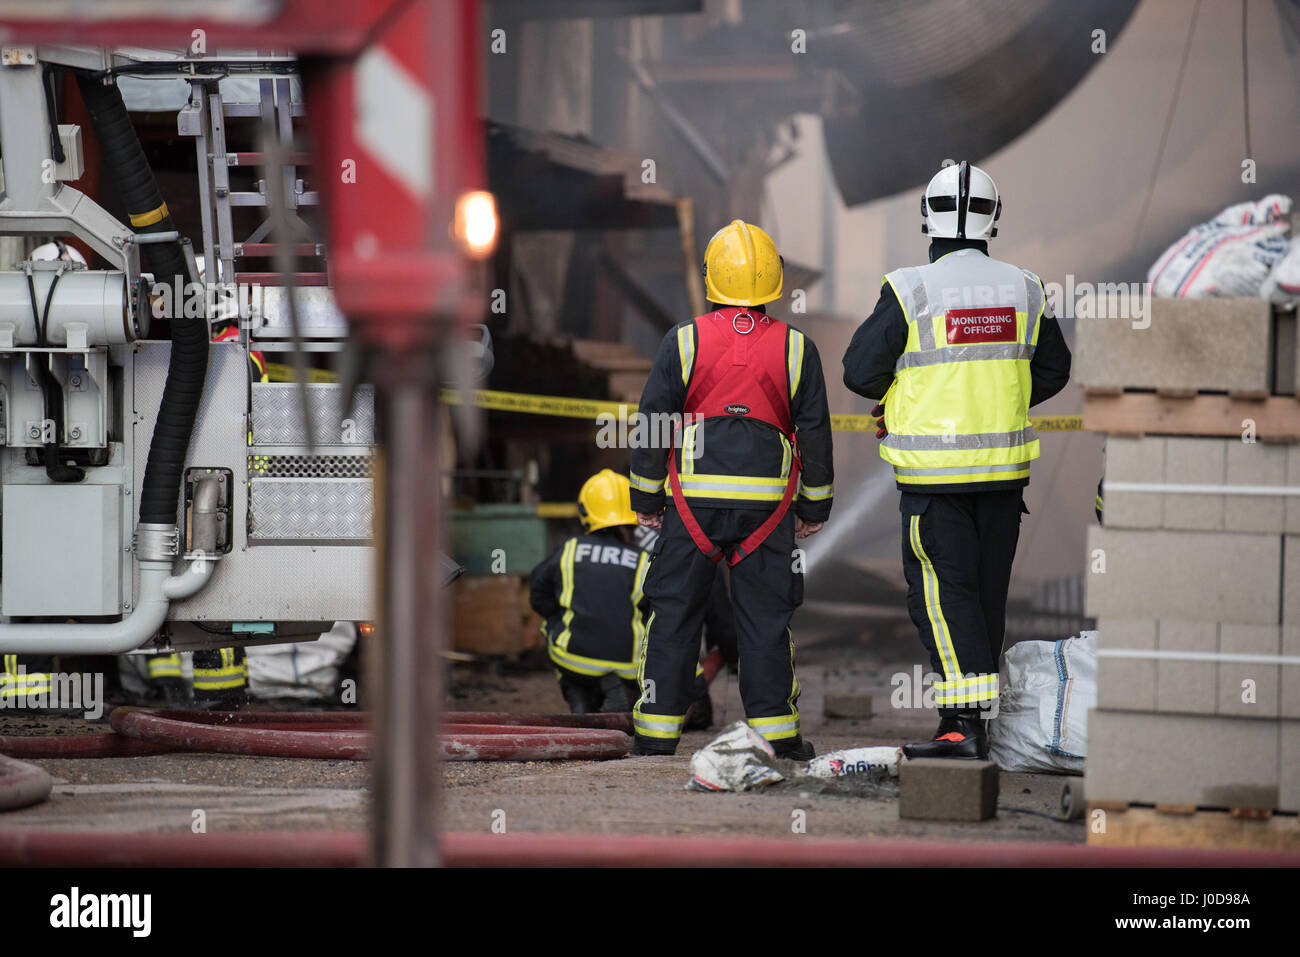 London, United Kingdom. 12th April 2017. Twelve fire engines and around 80 firefighters and officers were called Stock Photo